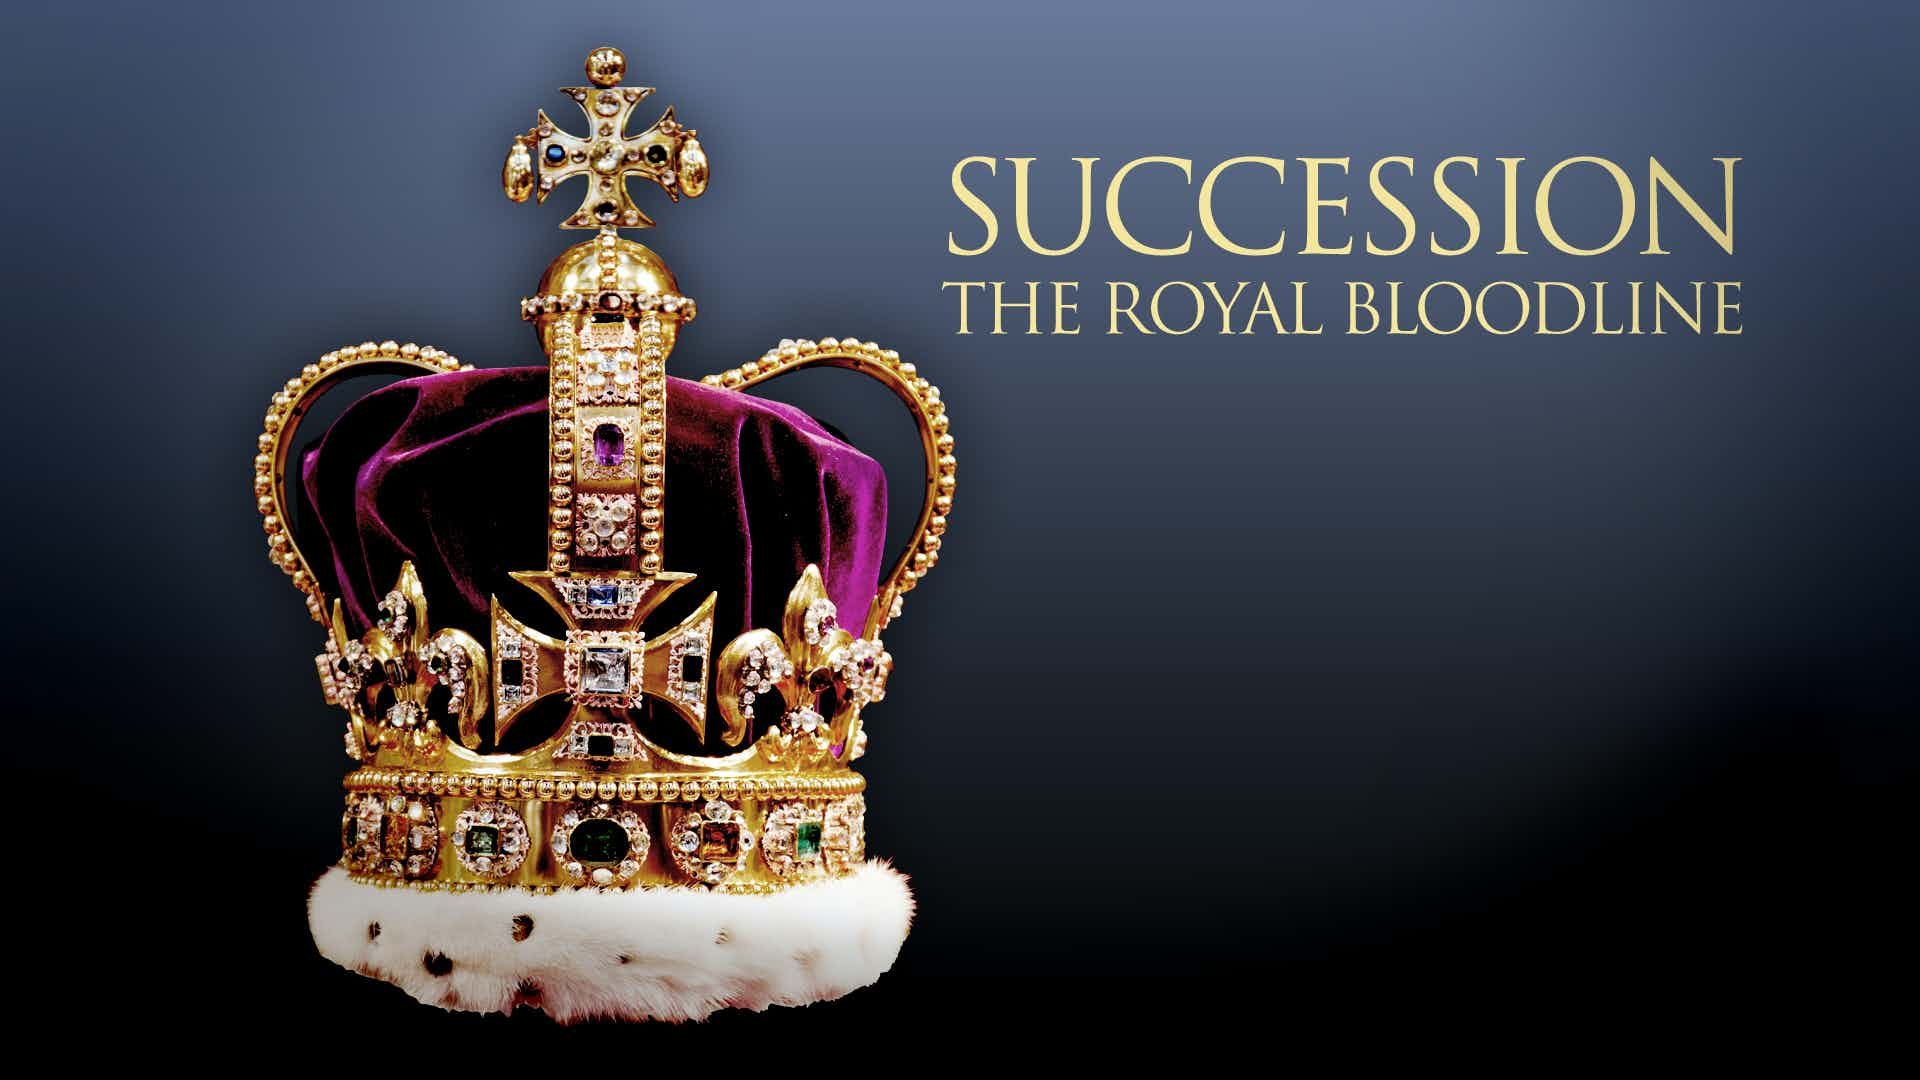 Succession: The Royal Bloodline